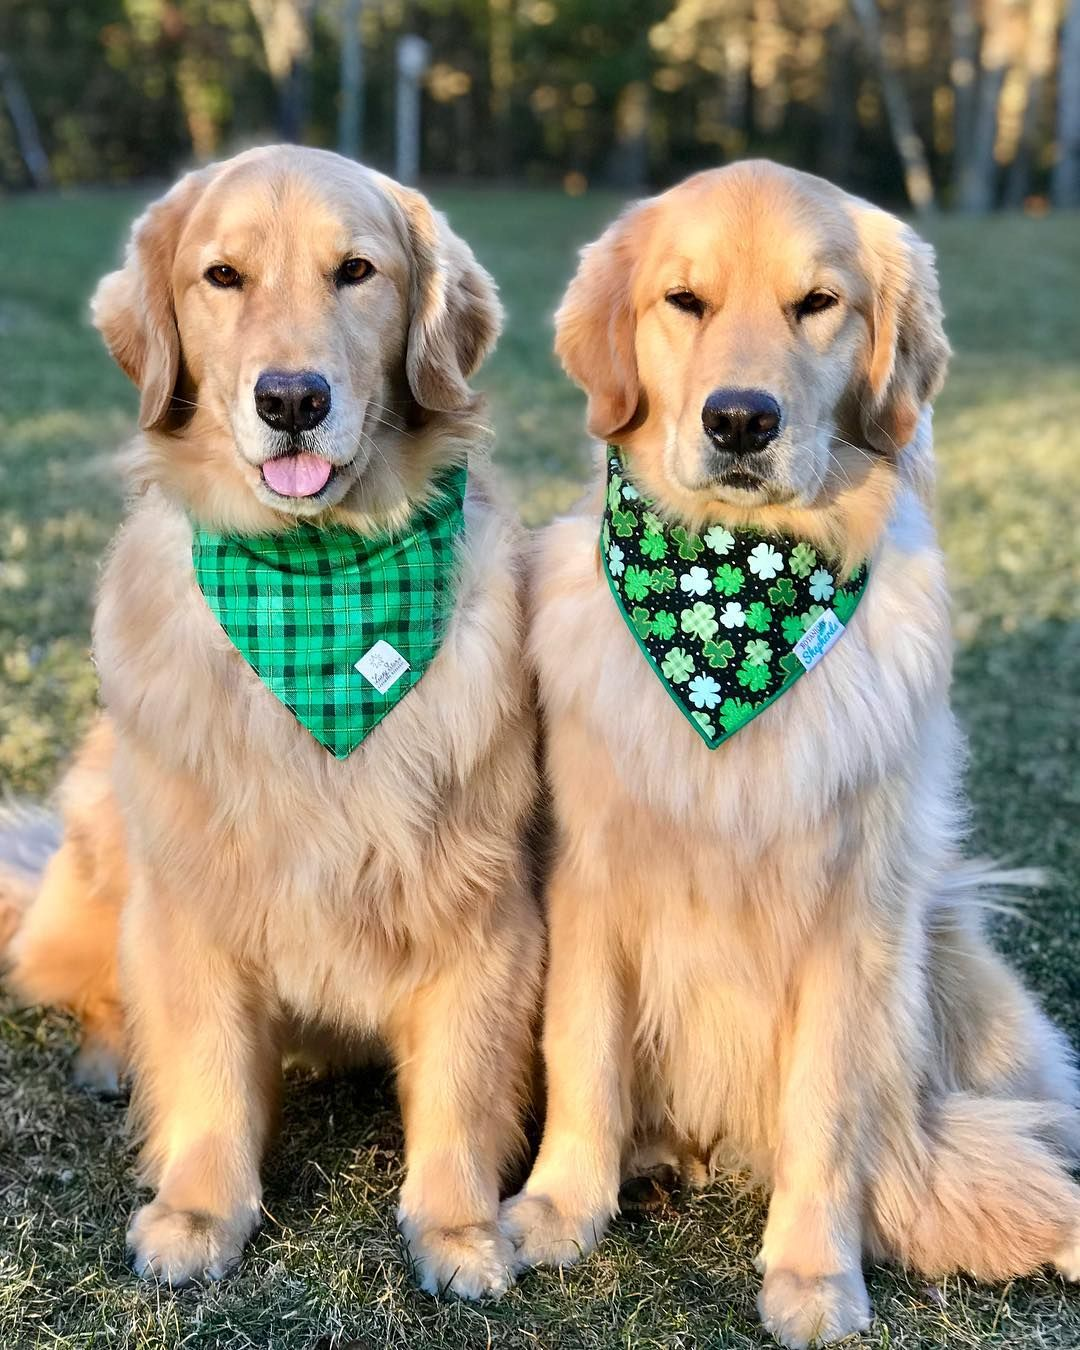 Rylie Chesney On Instagram Happy St Patrick S Day Furiends